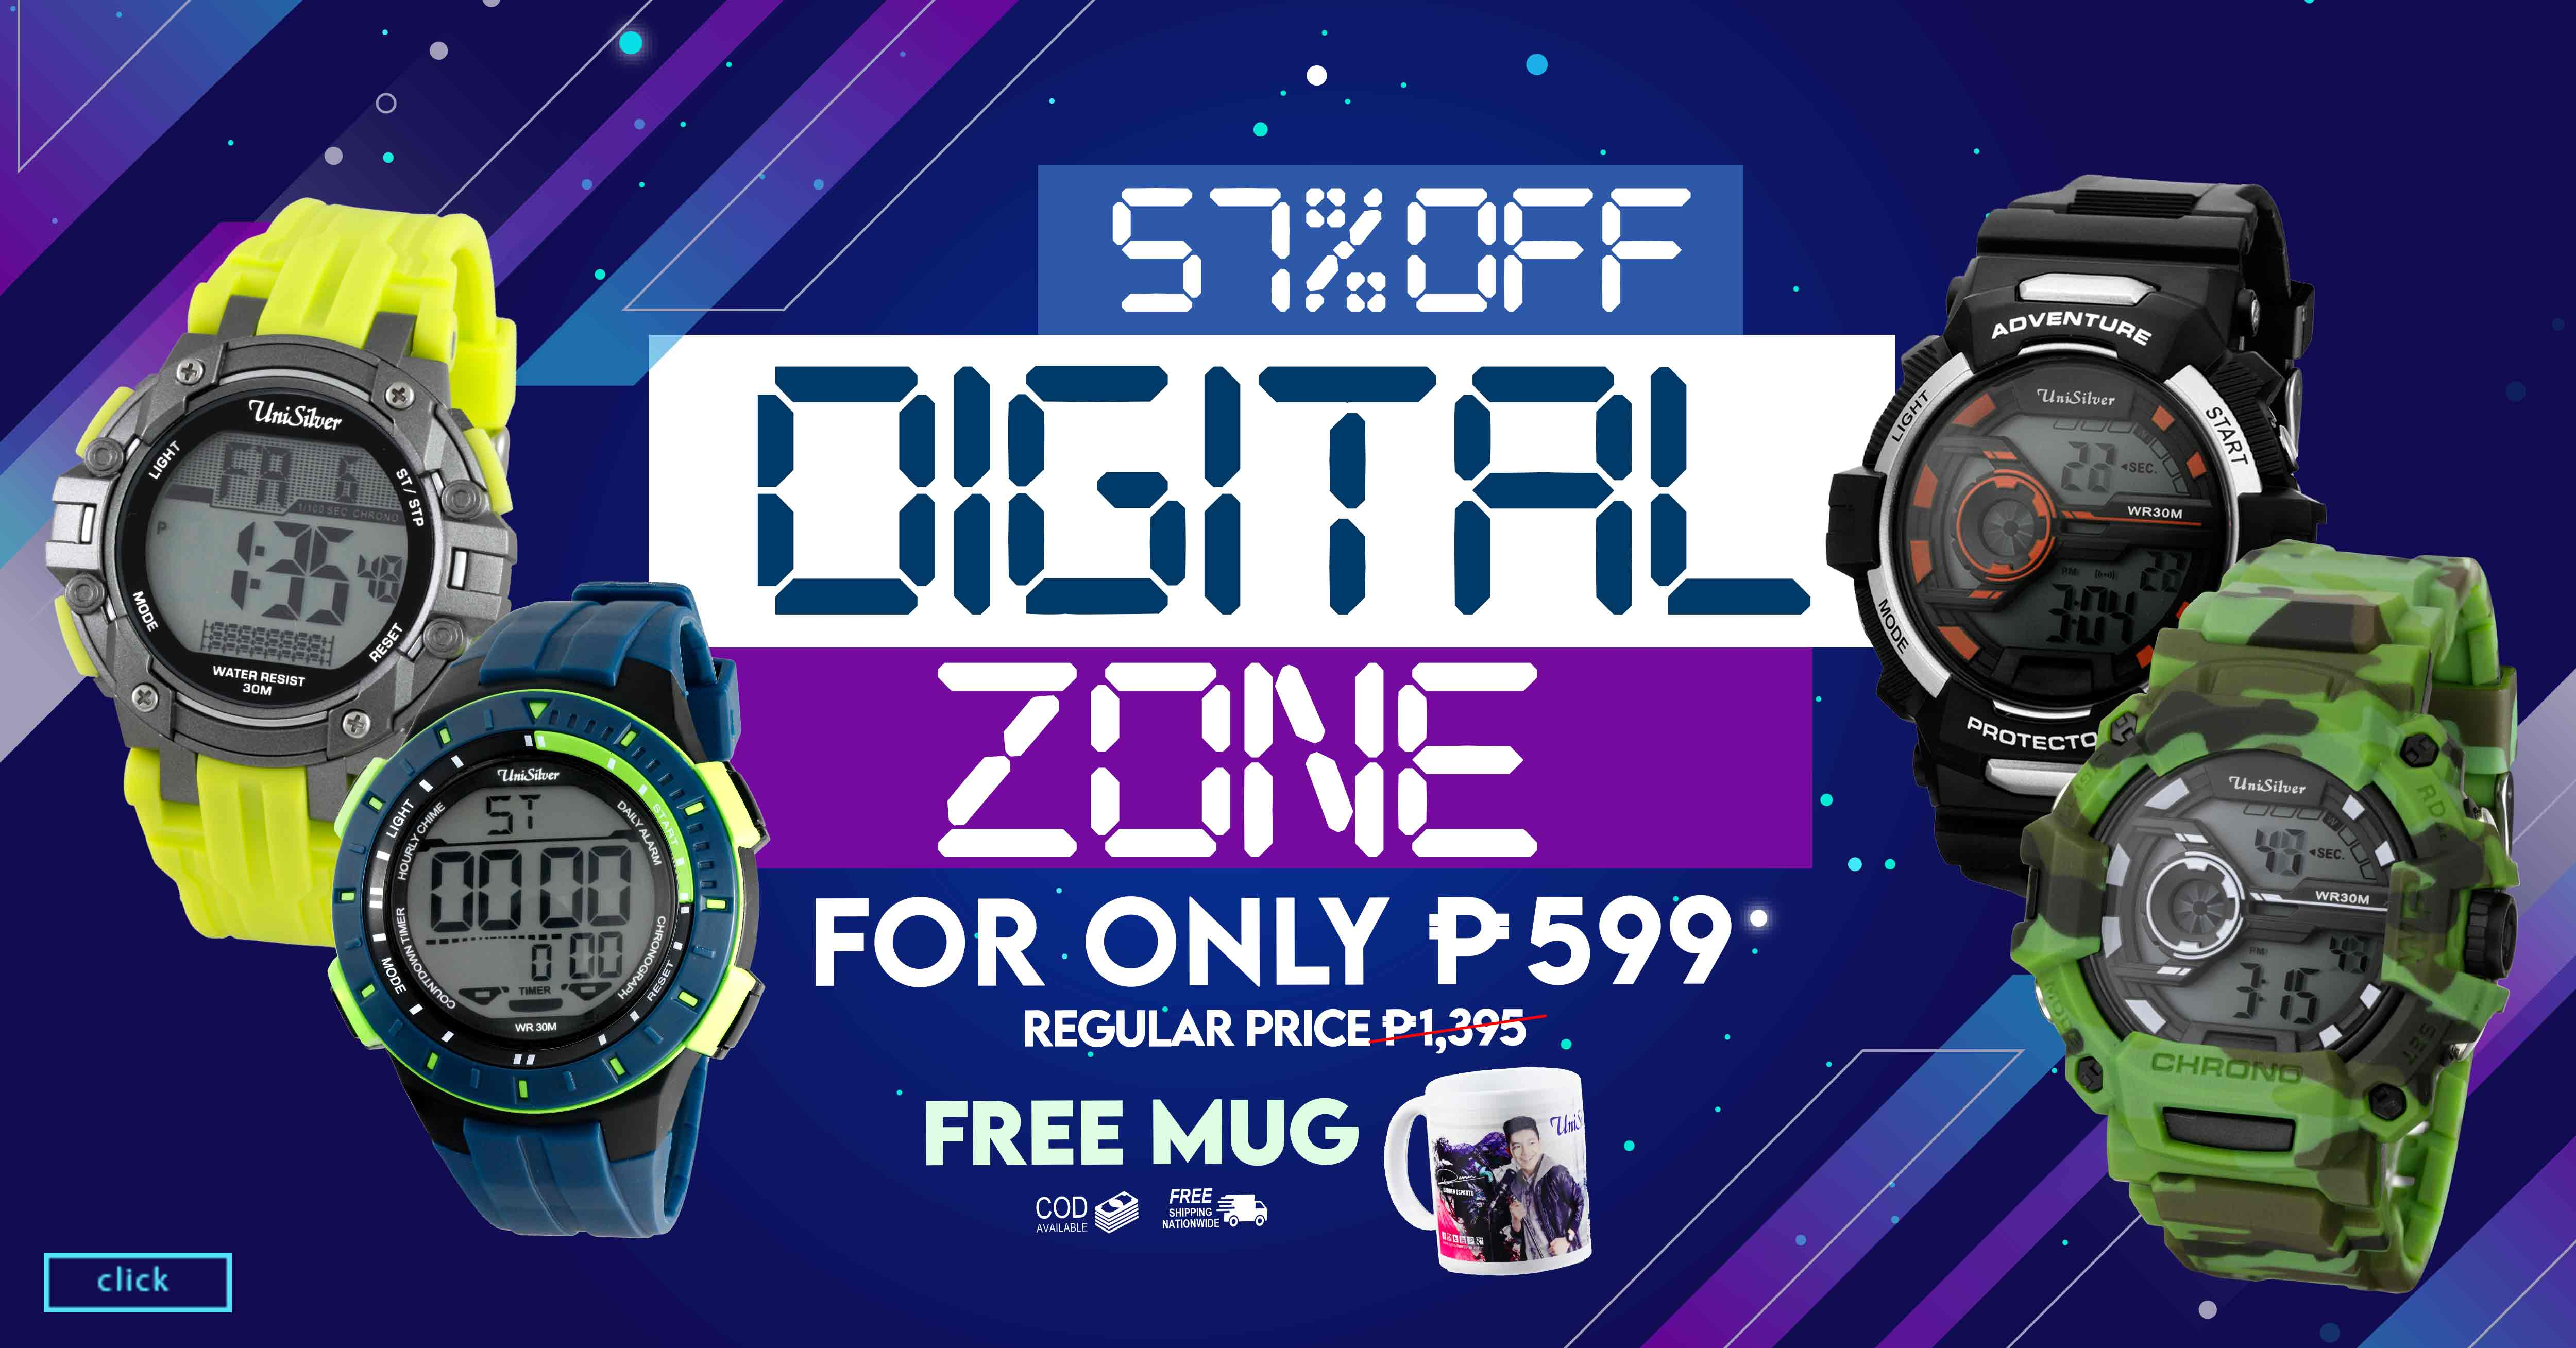 Timepieces make great fashion statement especially with the DIGITAL ZONE Sale  from UniSilver TIME!  1 watch for PHP599 only!  That's 57% off from the average regular price of PHP1,395!  Plus you'll also get a FREE mug.  Promo available only online http://www.unisilvertime.com/ Free shipping nationwide and COD option is available. Order now here >>> https://bit.ly/2zZMxUo